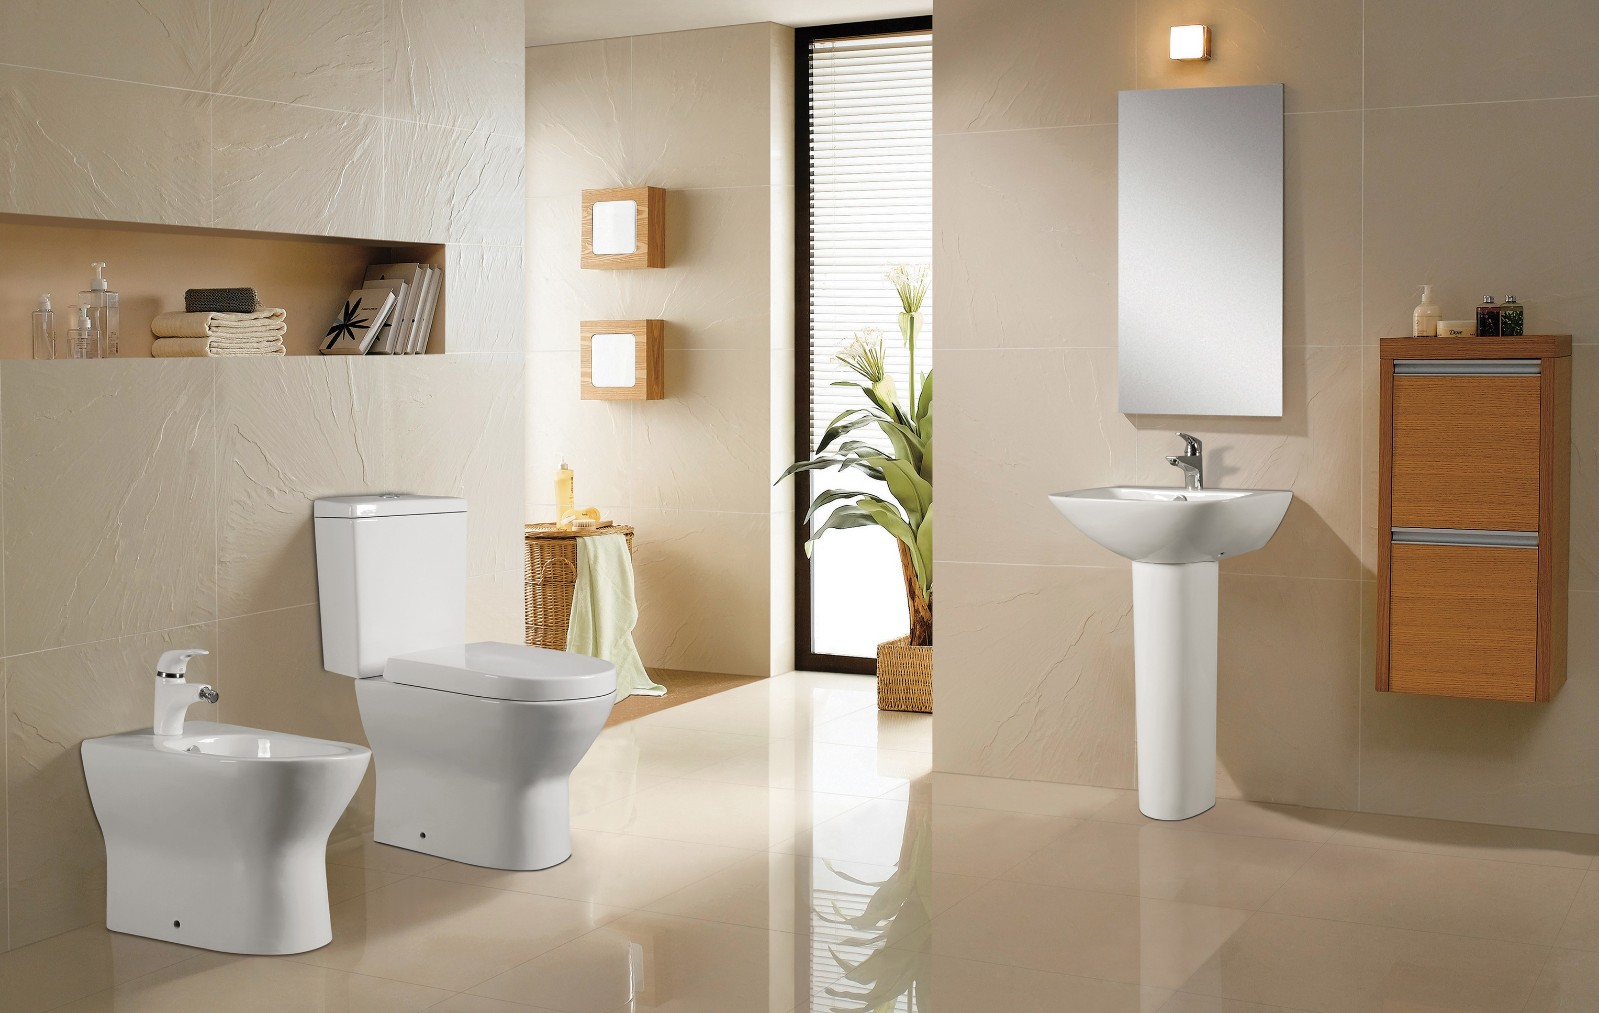 economical price two piece toilet porcelain grab now for bank-4